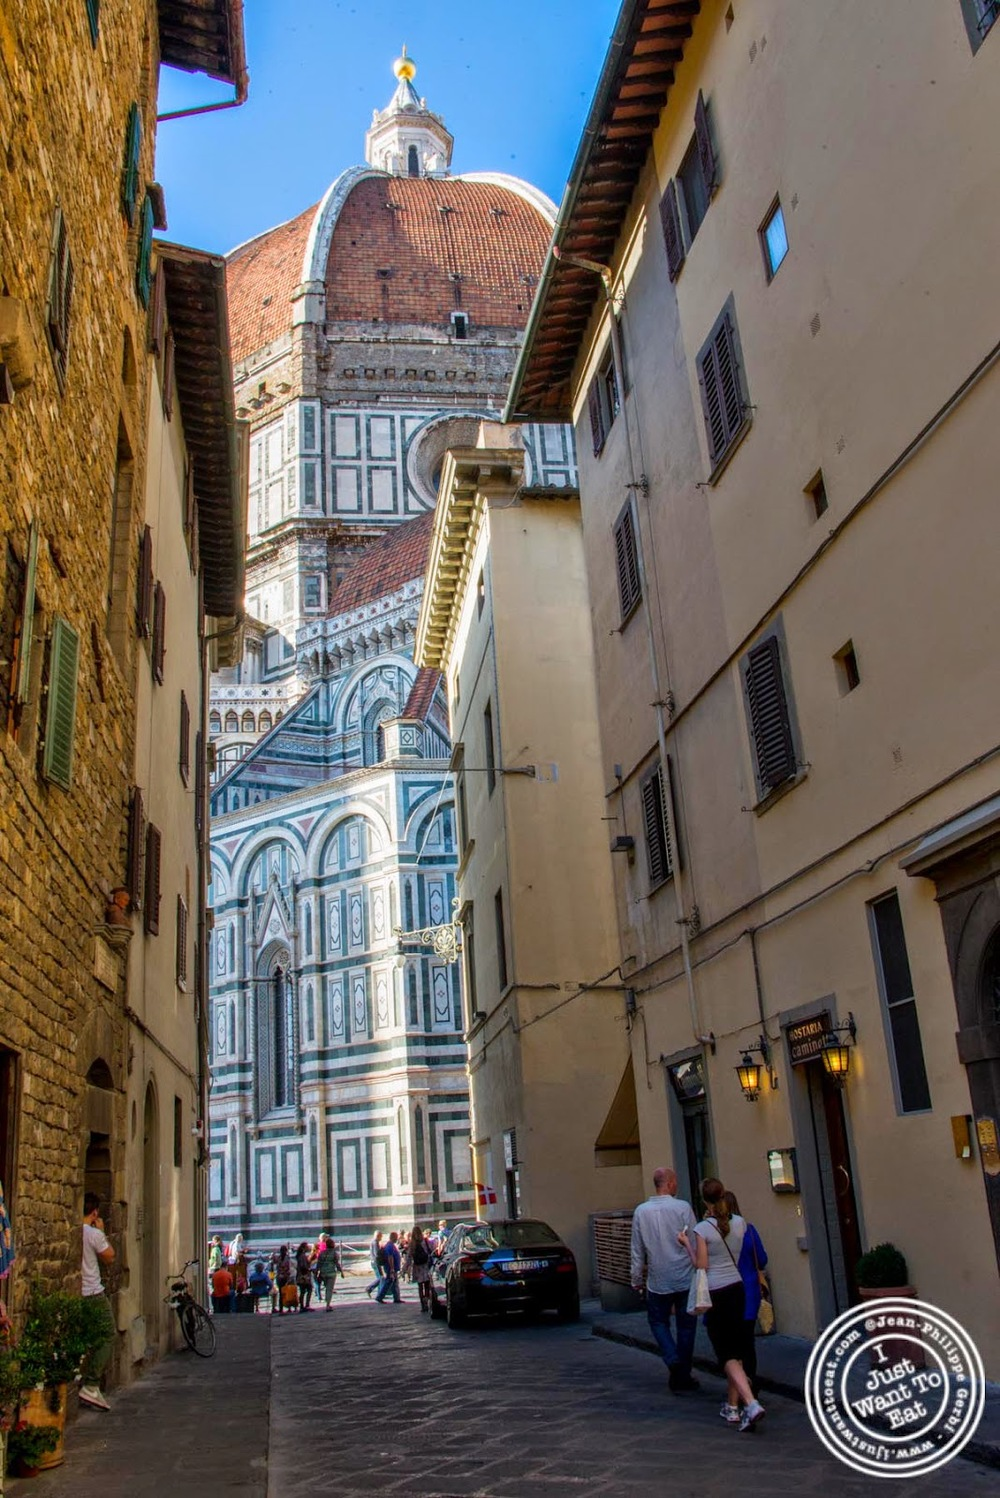 image of The Duomo in Florence, Italy